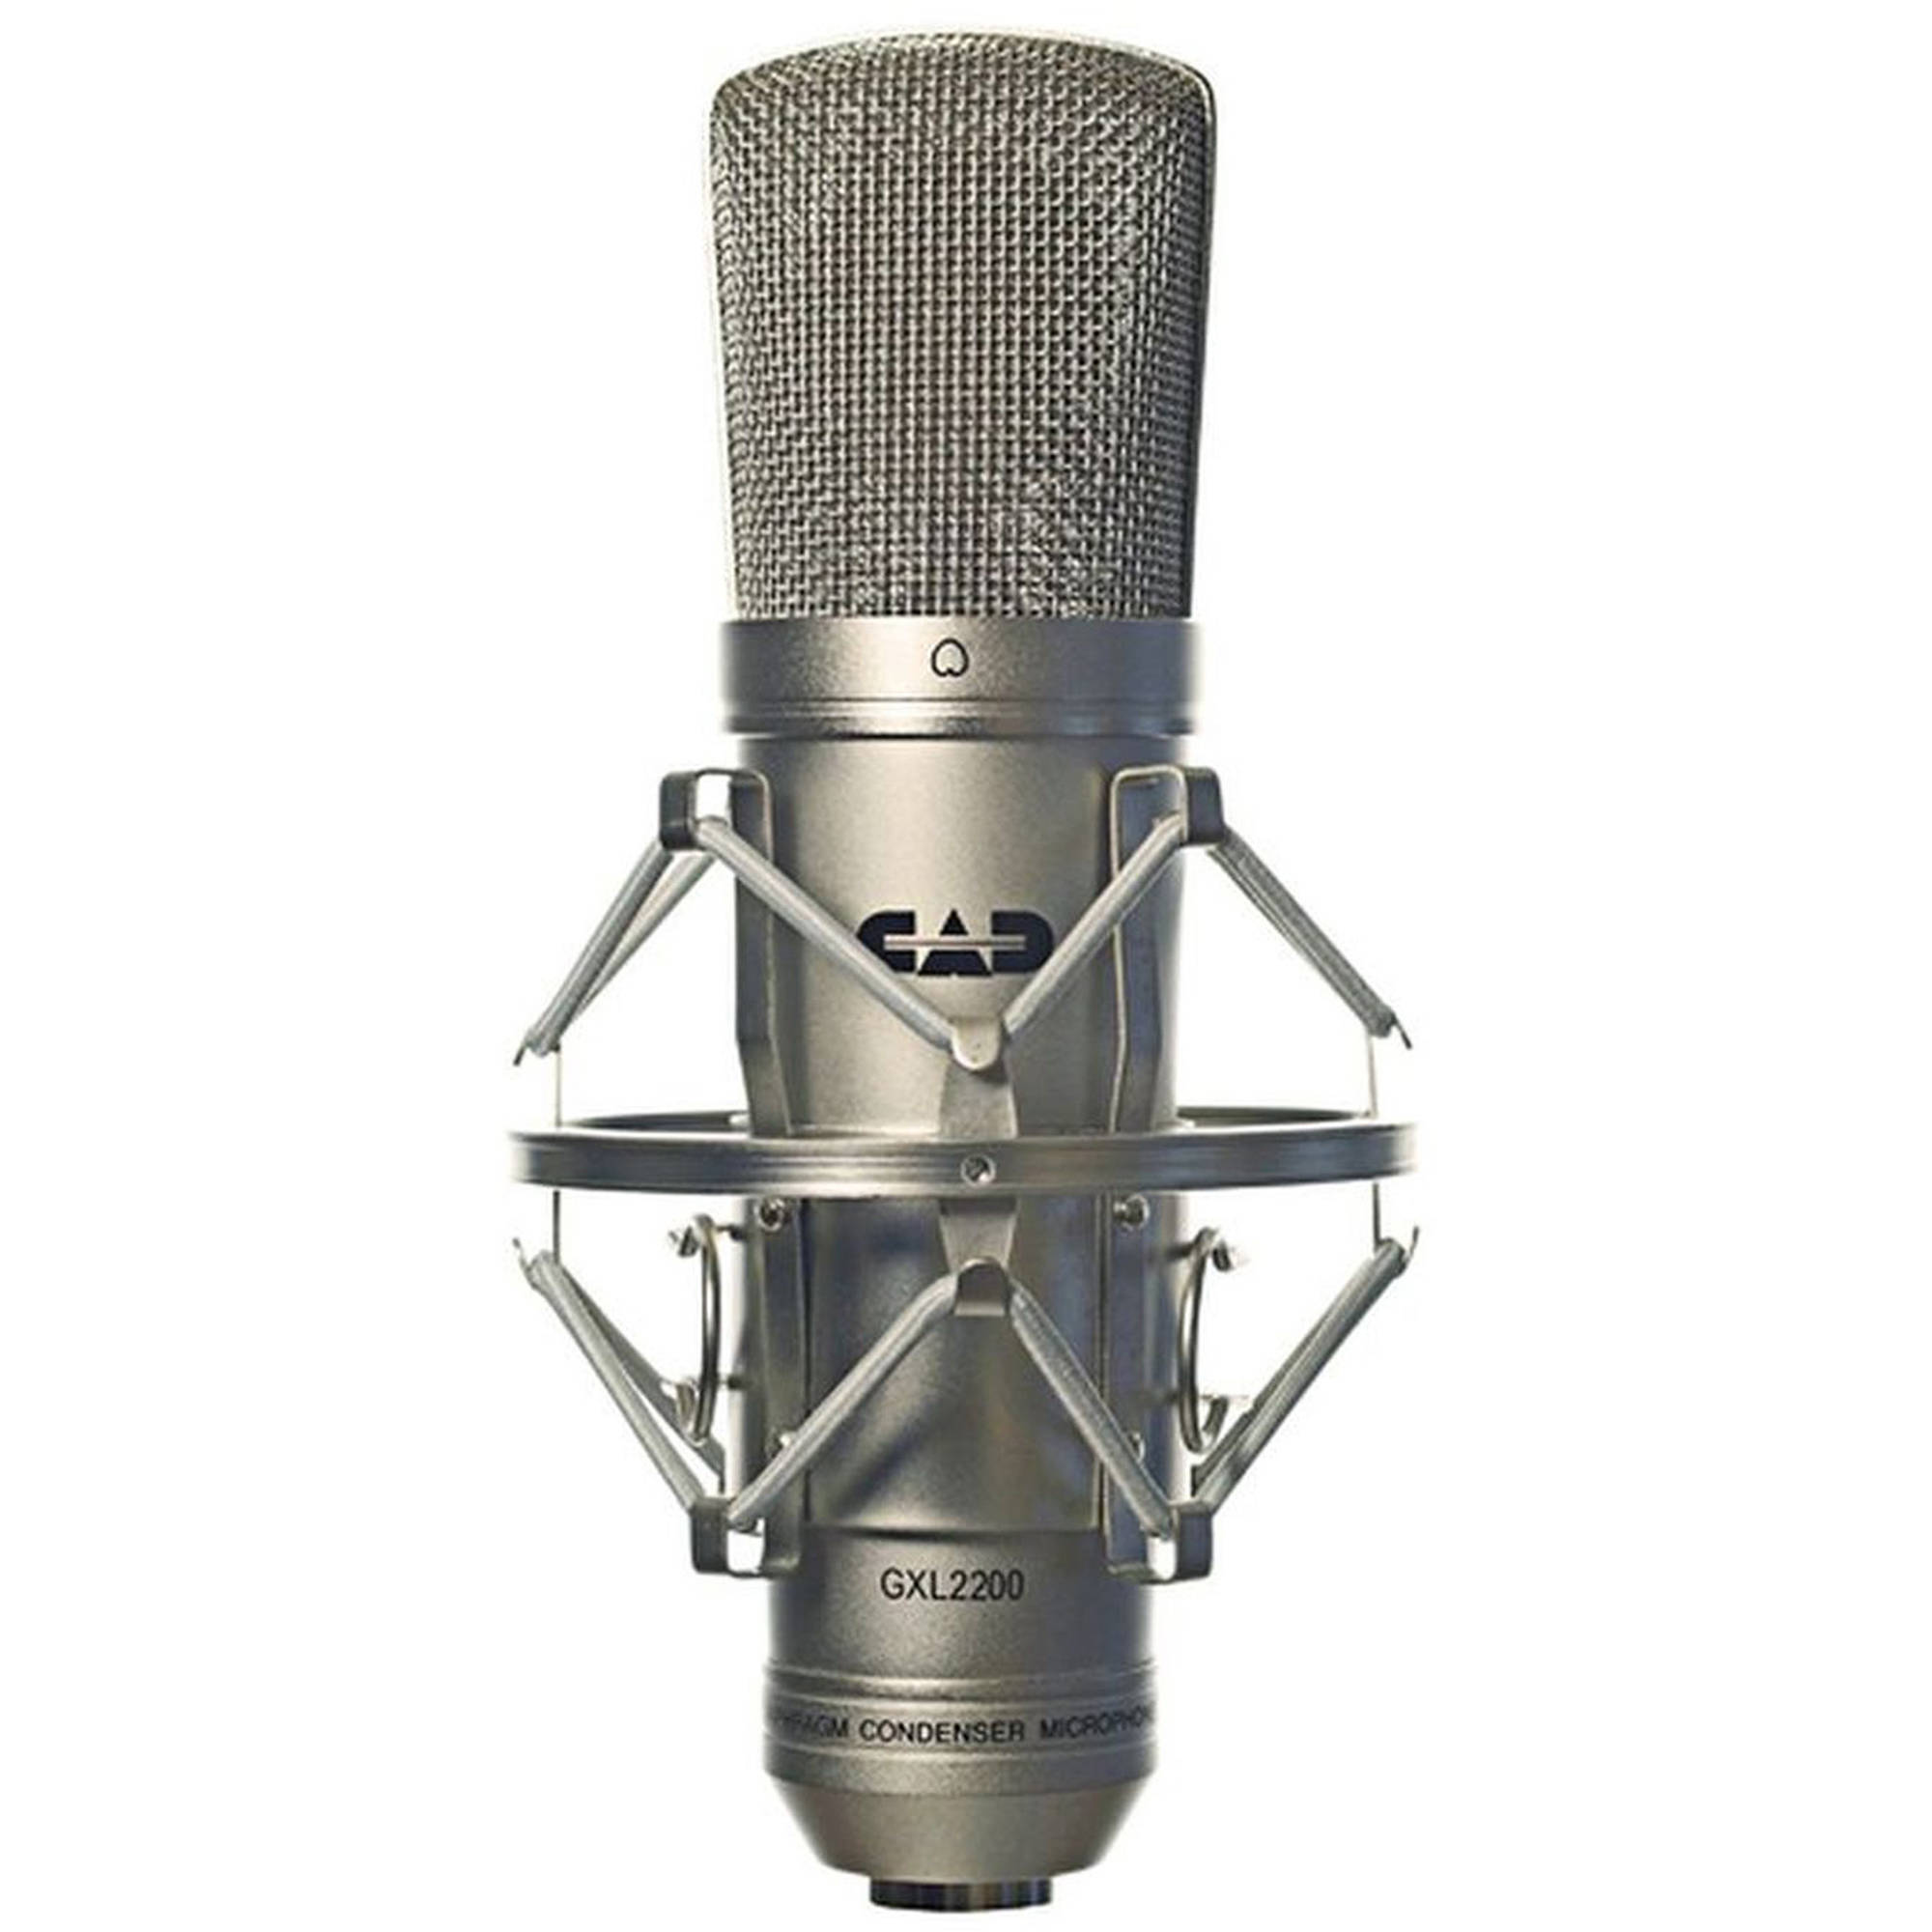 Large Diaphragm Cardioid Condenser Mic by CAD Audio